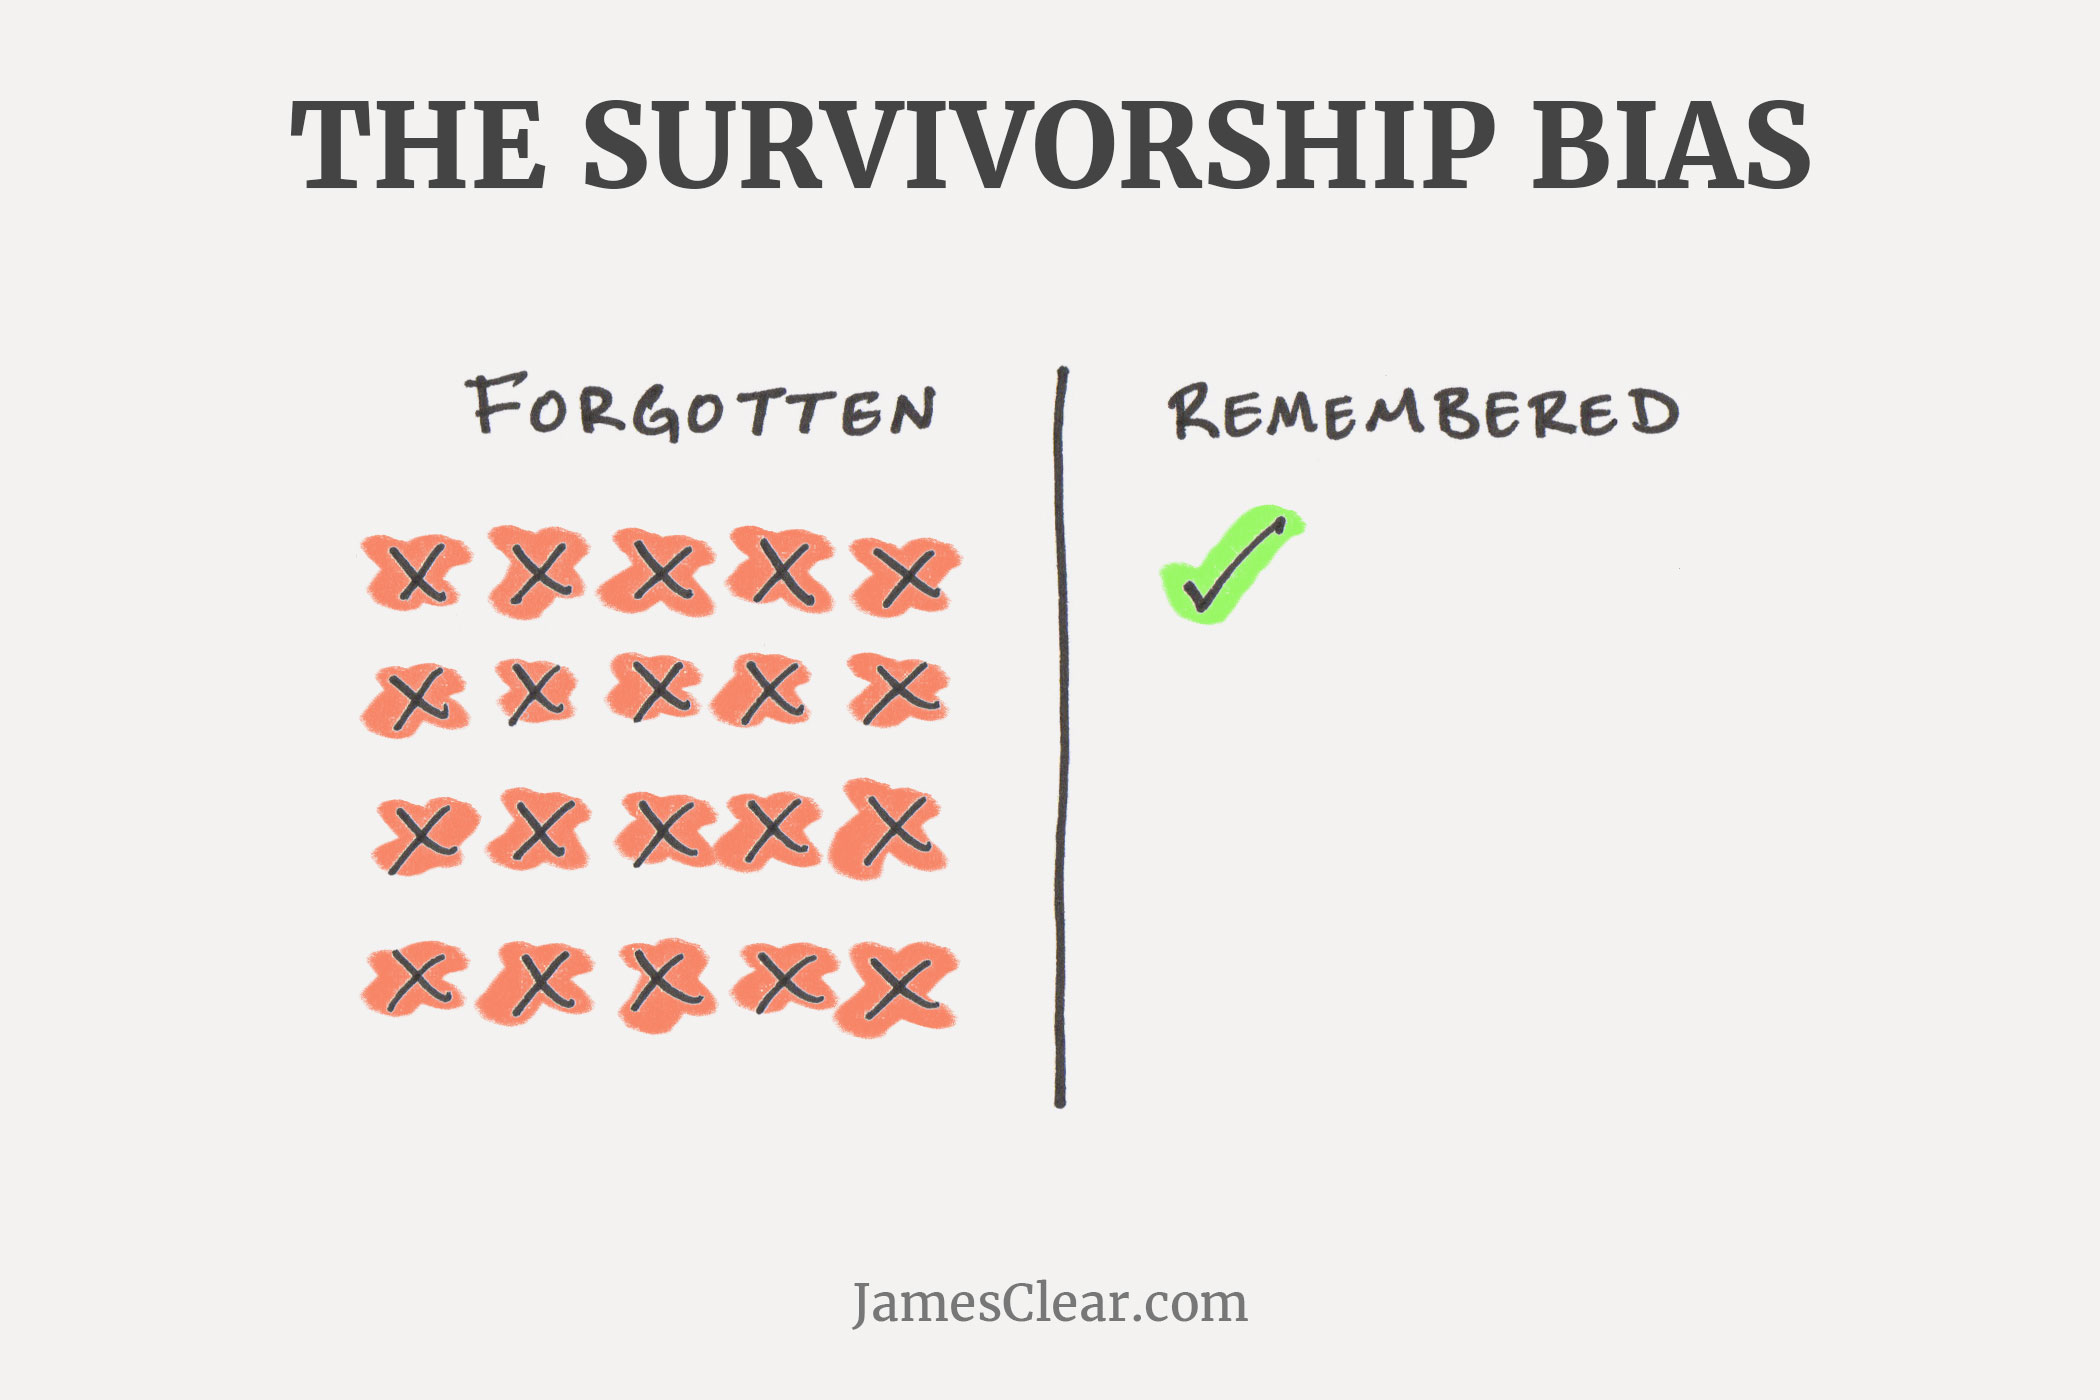 survivorship bias (Common Mental Errors)